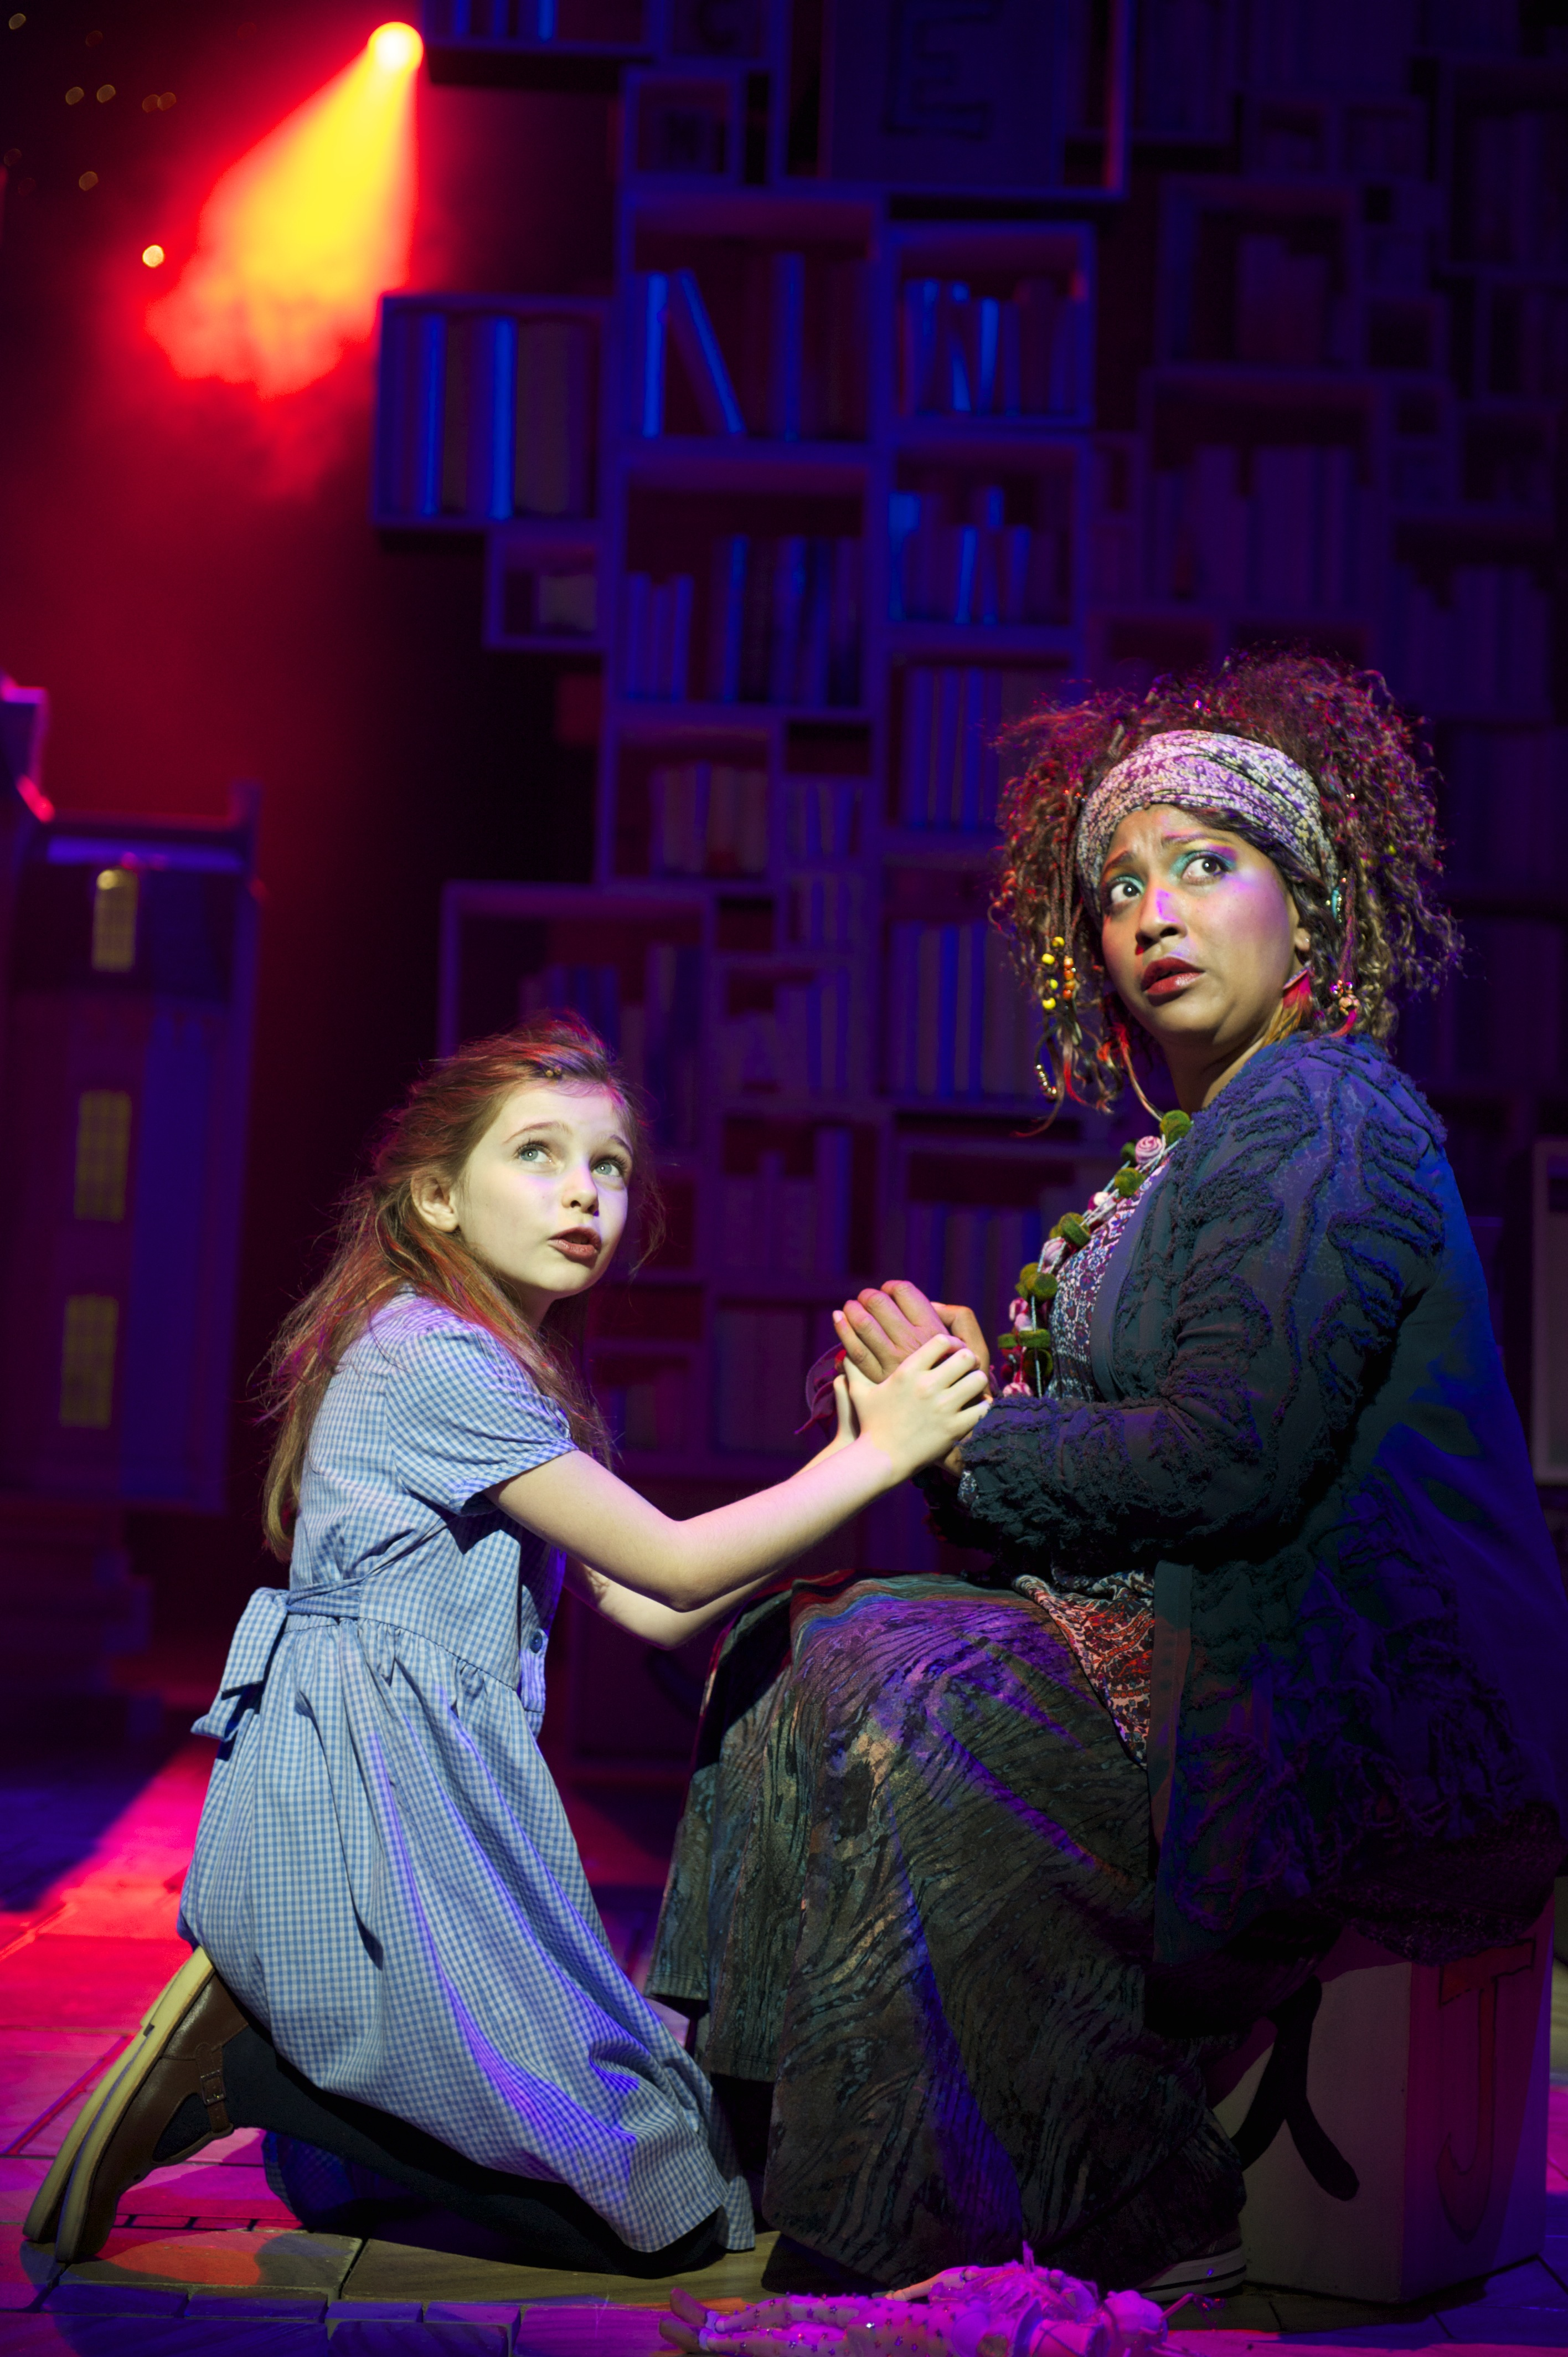 Eleanor Worthington Cox as Matilda and Melanie La Barrie as Mrs Phelps in Matilda The Musical. Photo by Manuel Harlan.